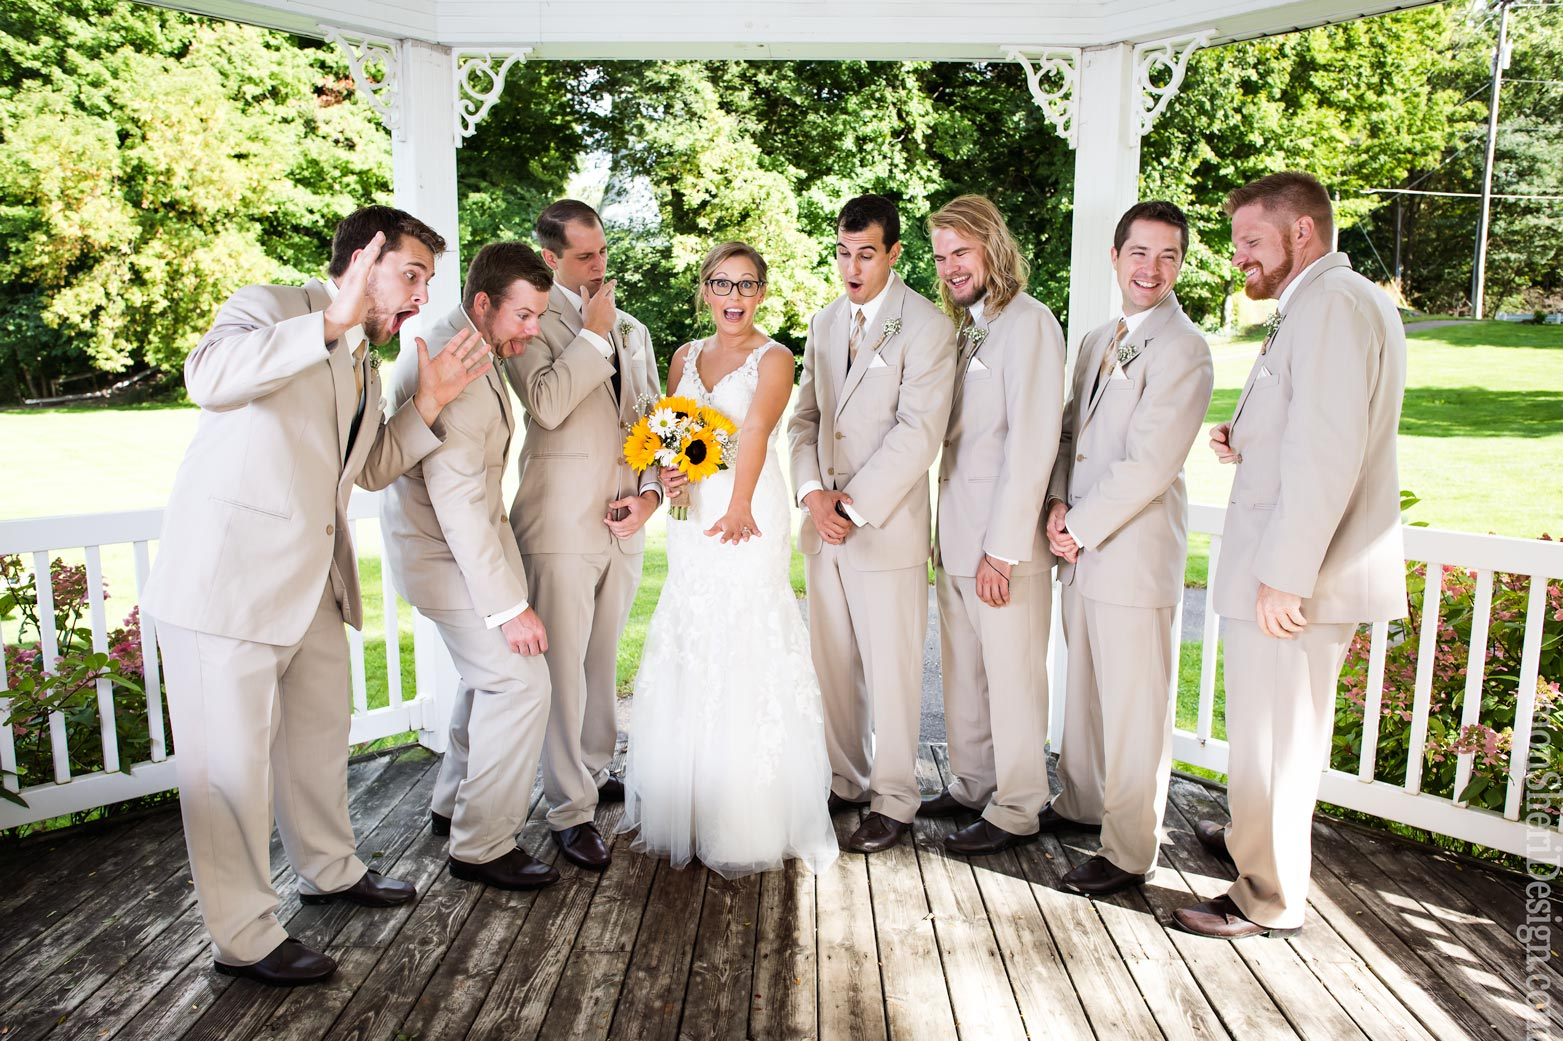 Event Photography - Grand Rapids, MI-HITCHING POST EVENTS: wedding & event venue